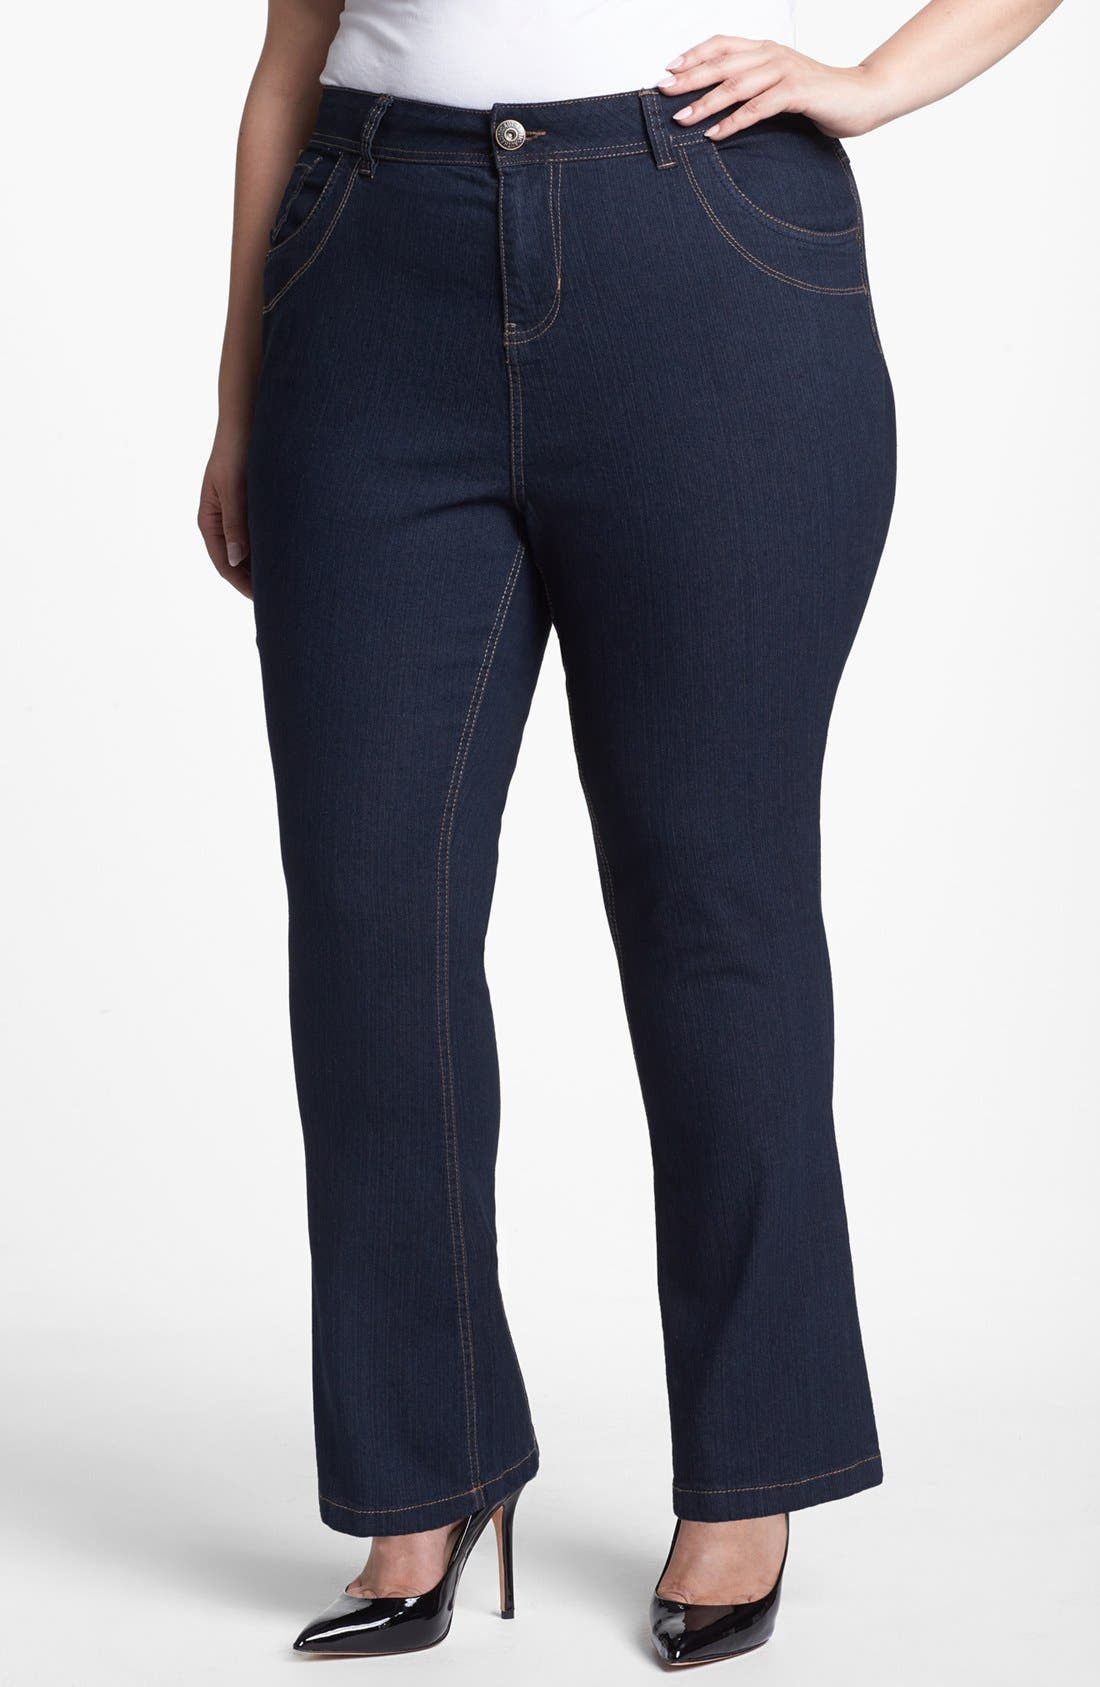 Alternate Image 1 Selected - Evans Bootcut Jeans (Plus Size)